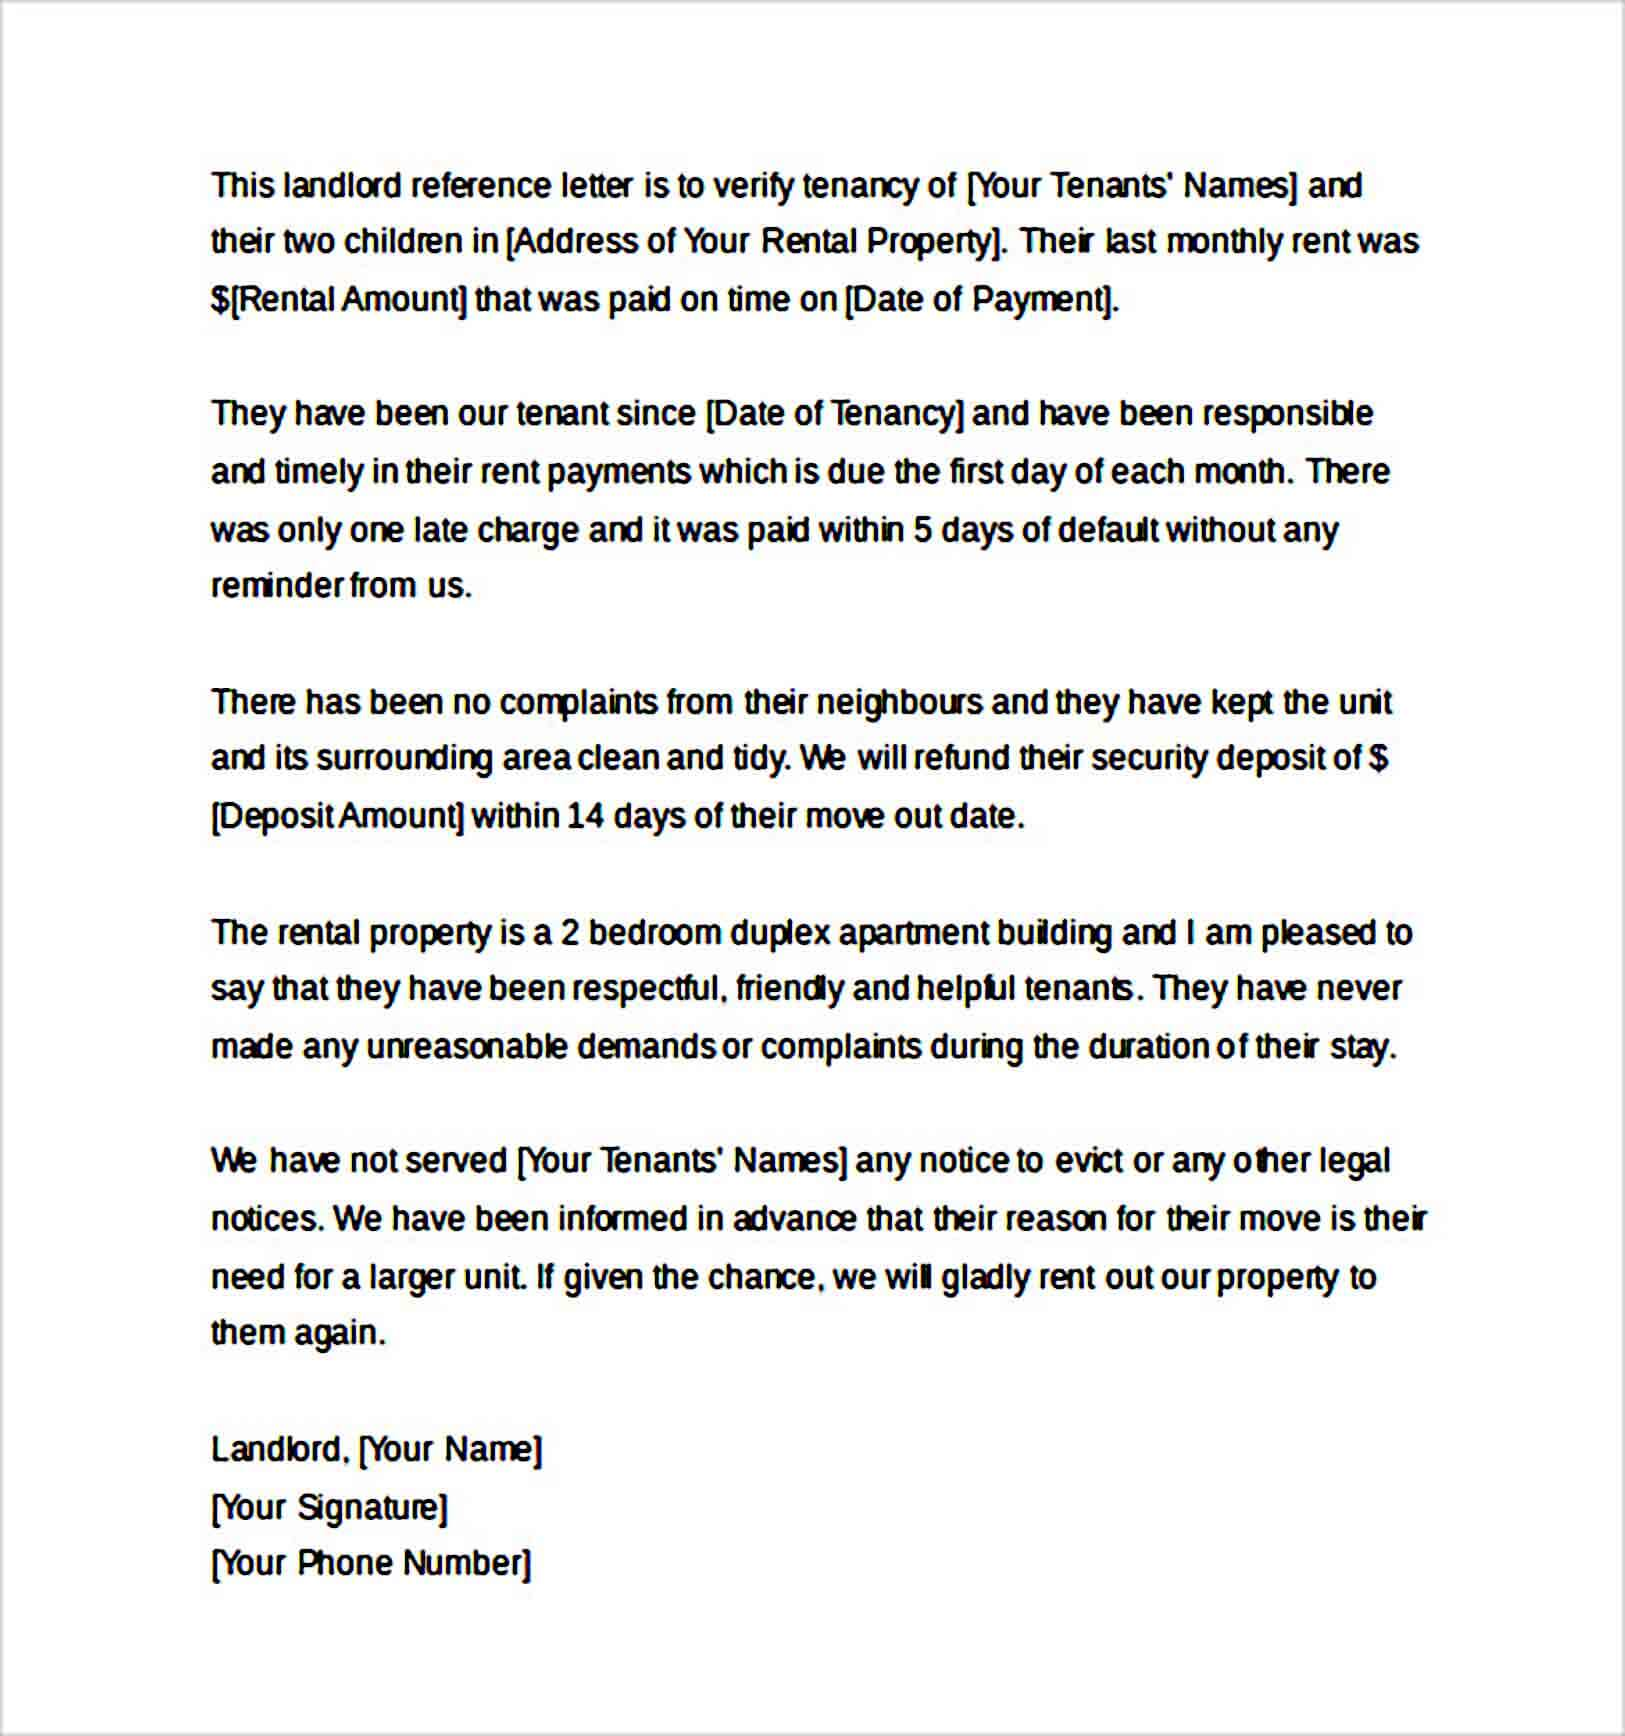 Landlord Reference Letter Request